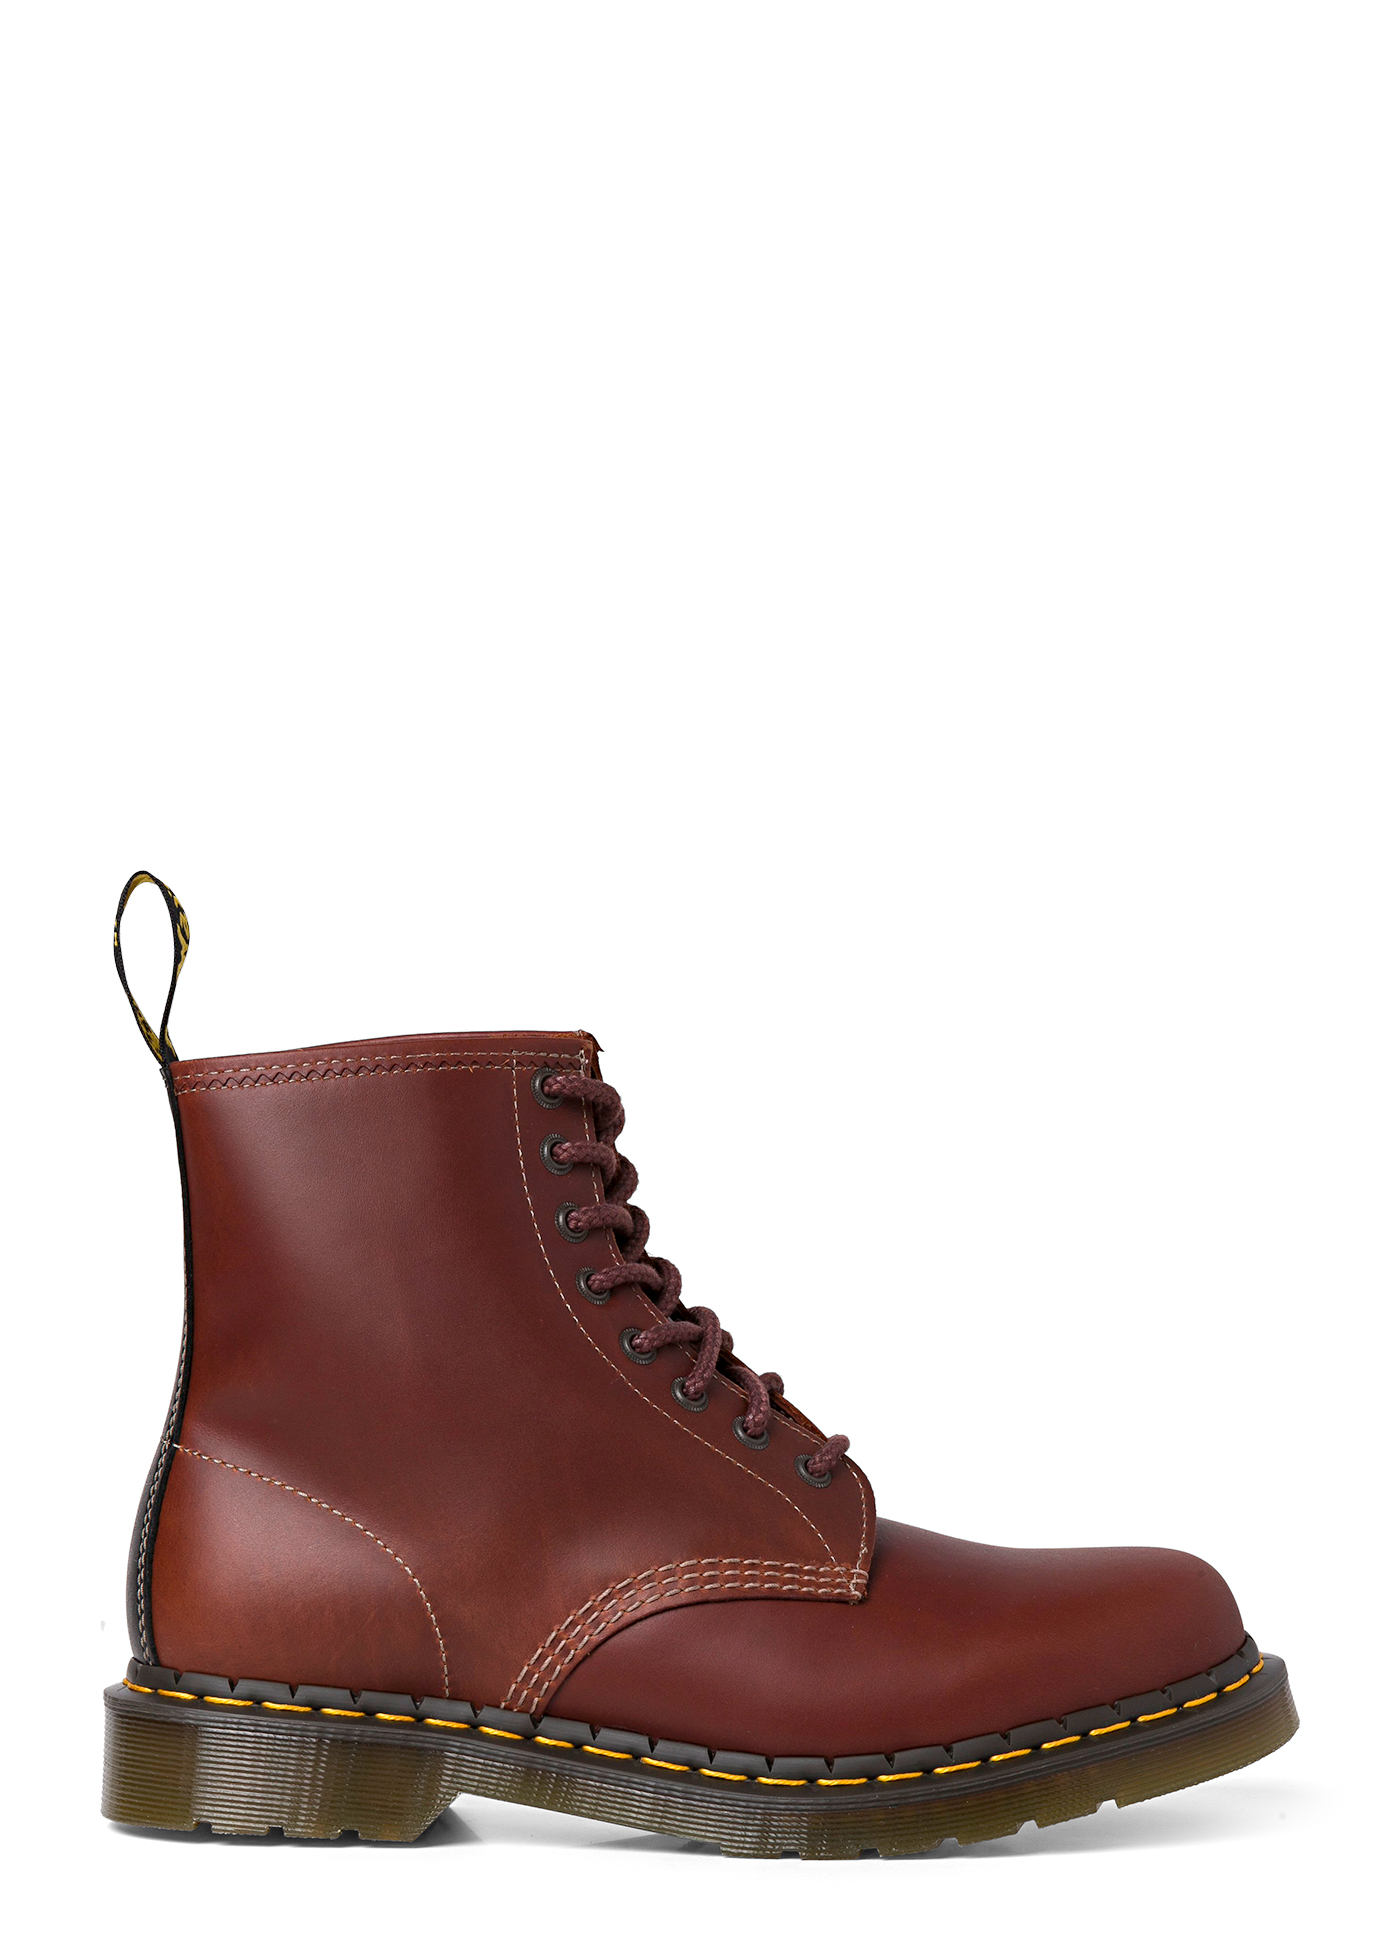 1460 Brown+Black Abruzzo Wp image number 0